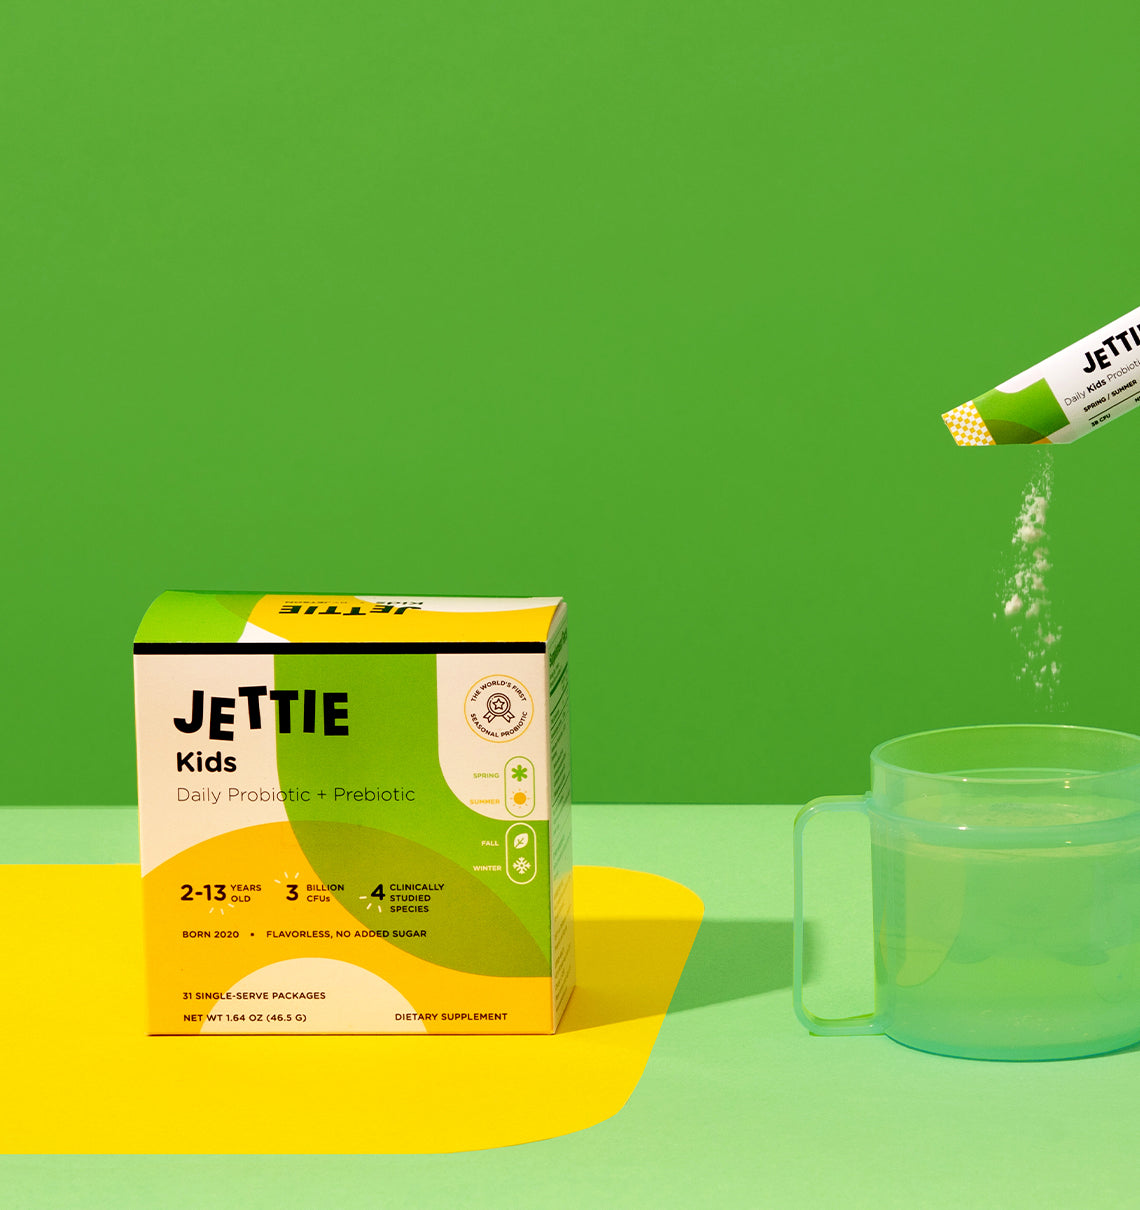 Jettie Kids Probiotic & Prebiotic for Spring/Summer